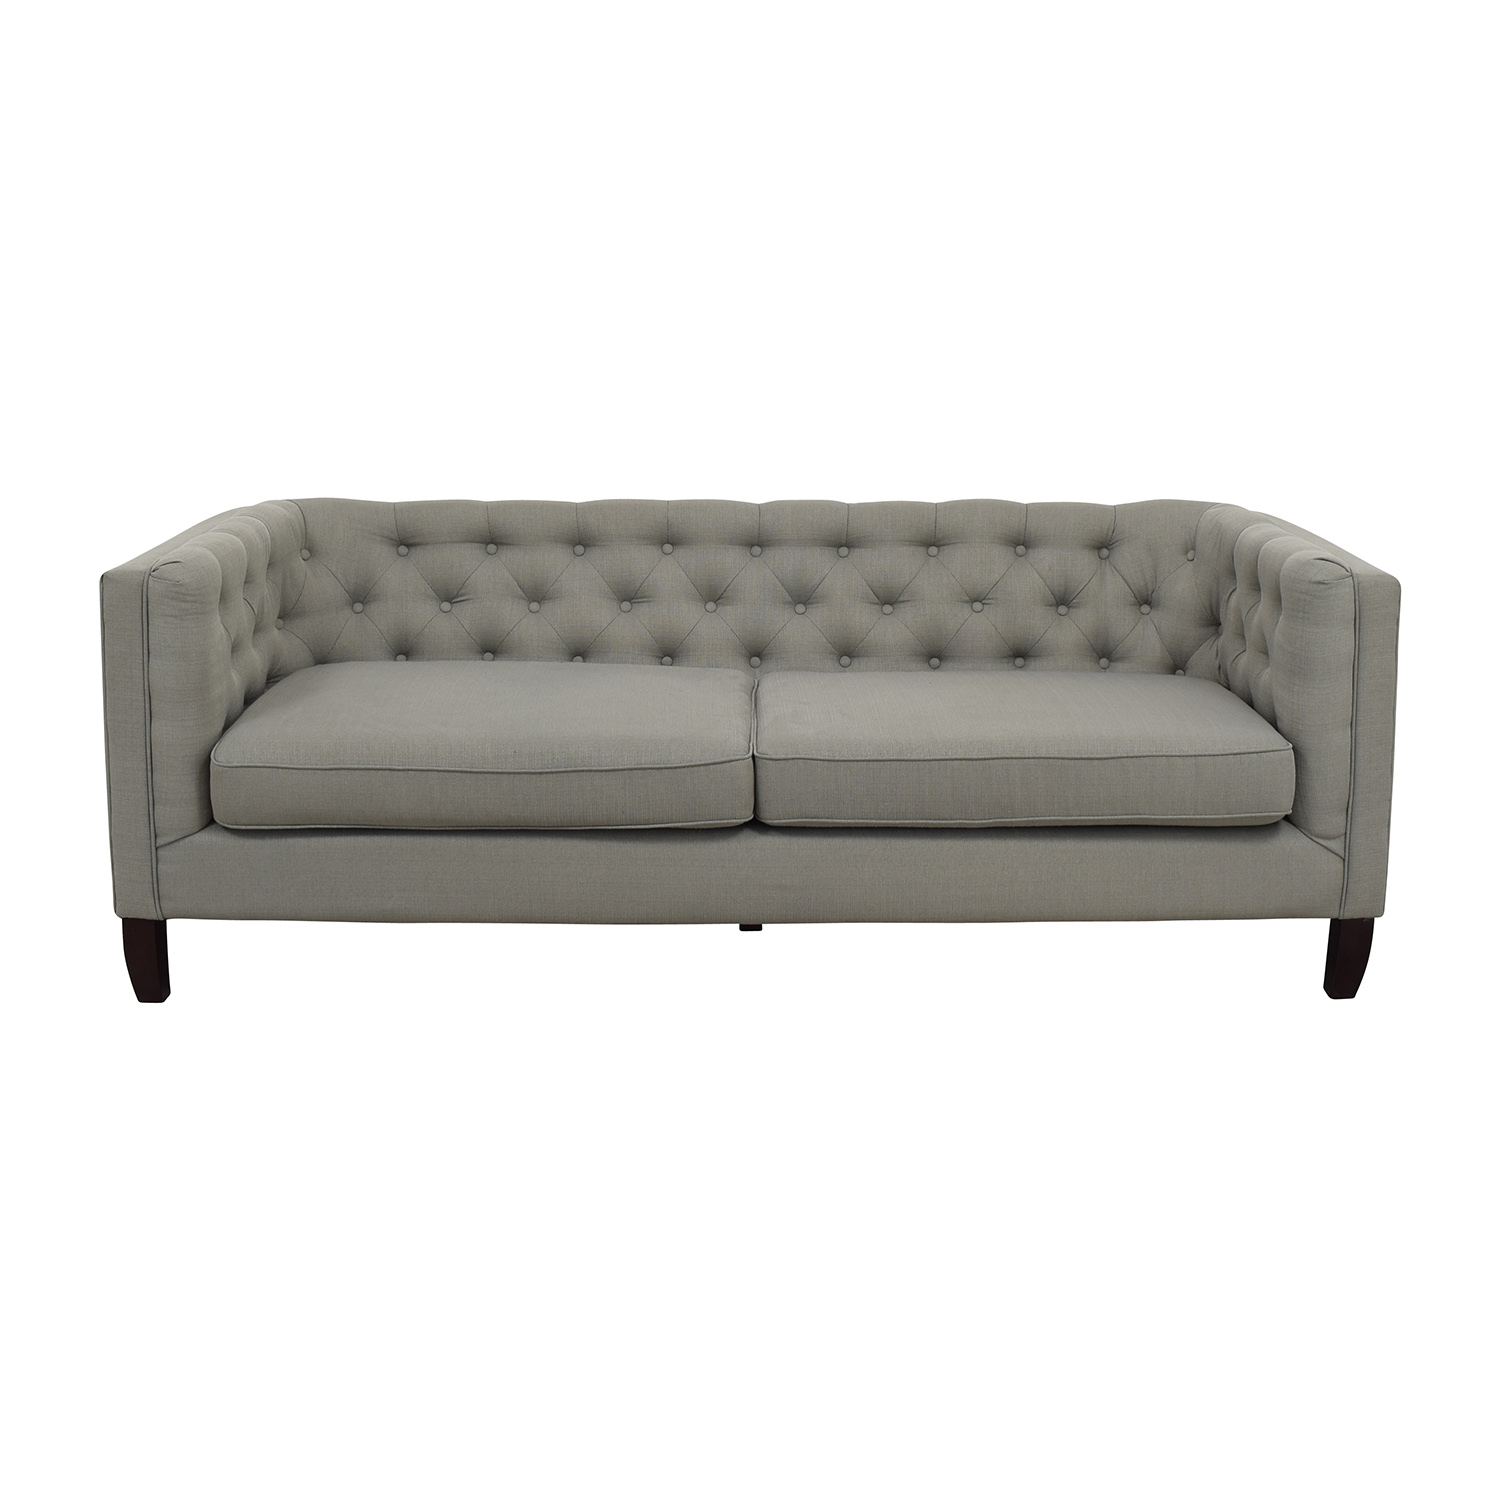 World Market World Market Kendall Sofa Used ...